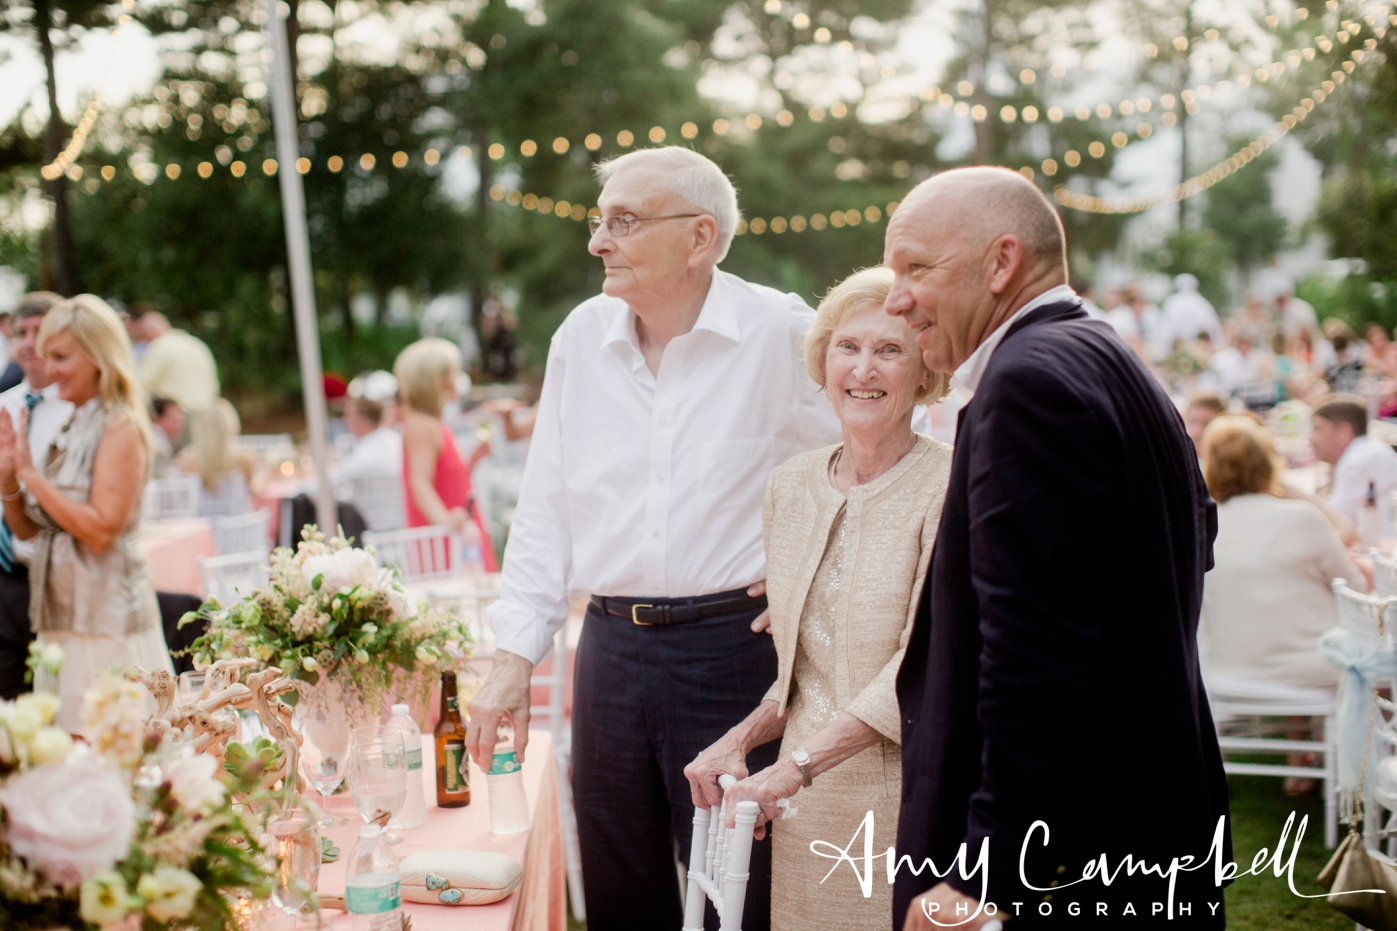 emilyreed_wed_blog_amycampbellphotography_0094.jpg